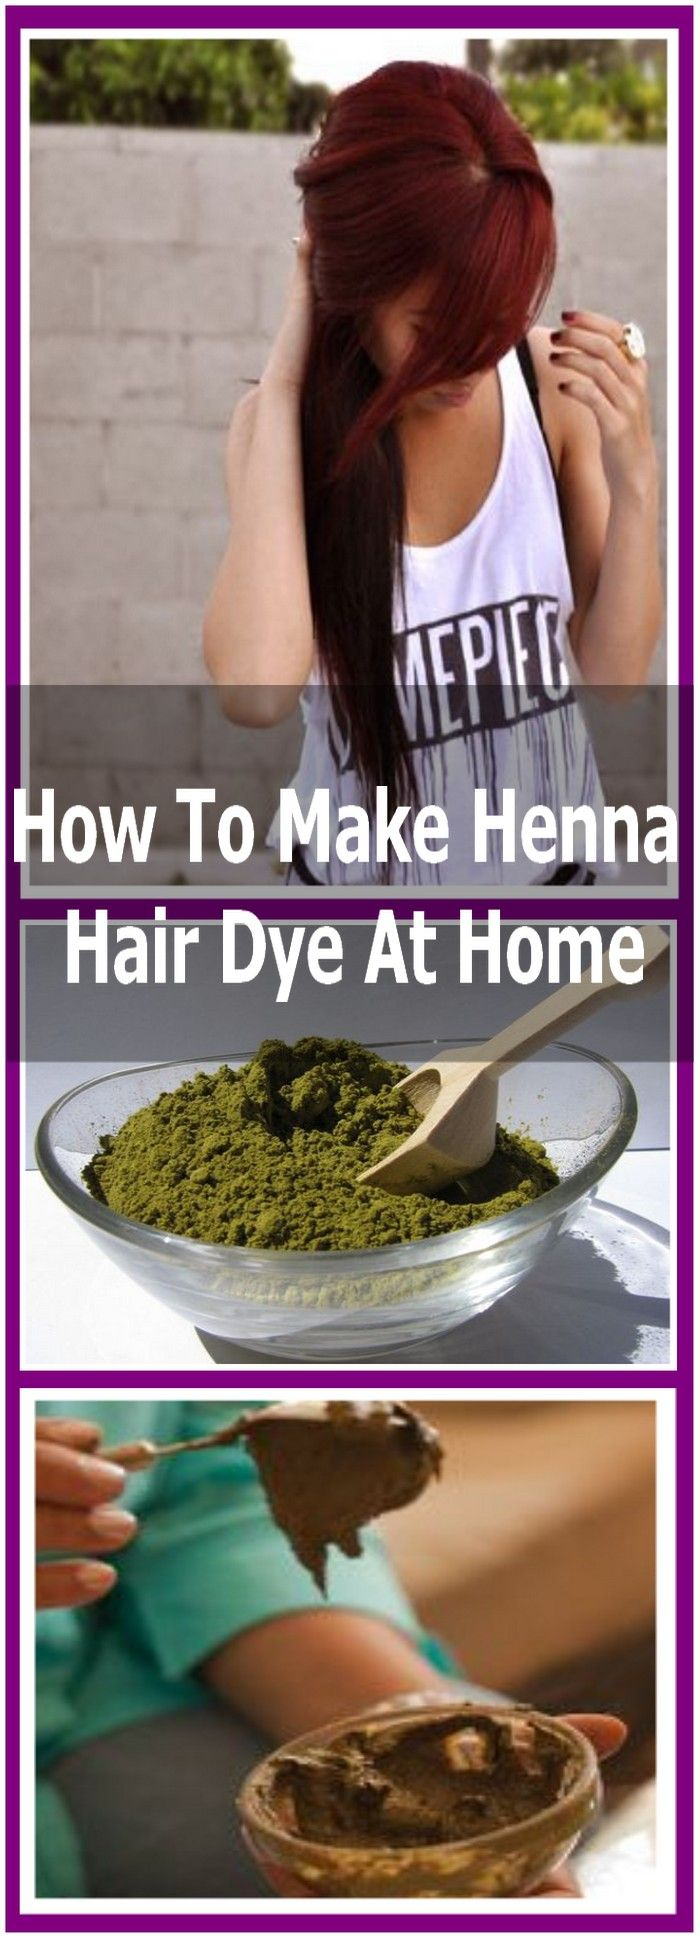 How To Make Henna Hair Dye At Home1